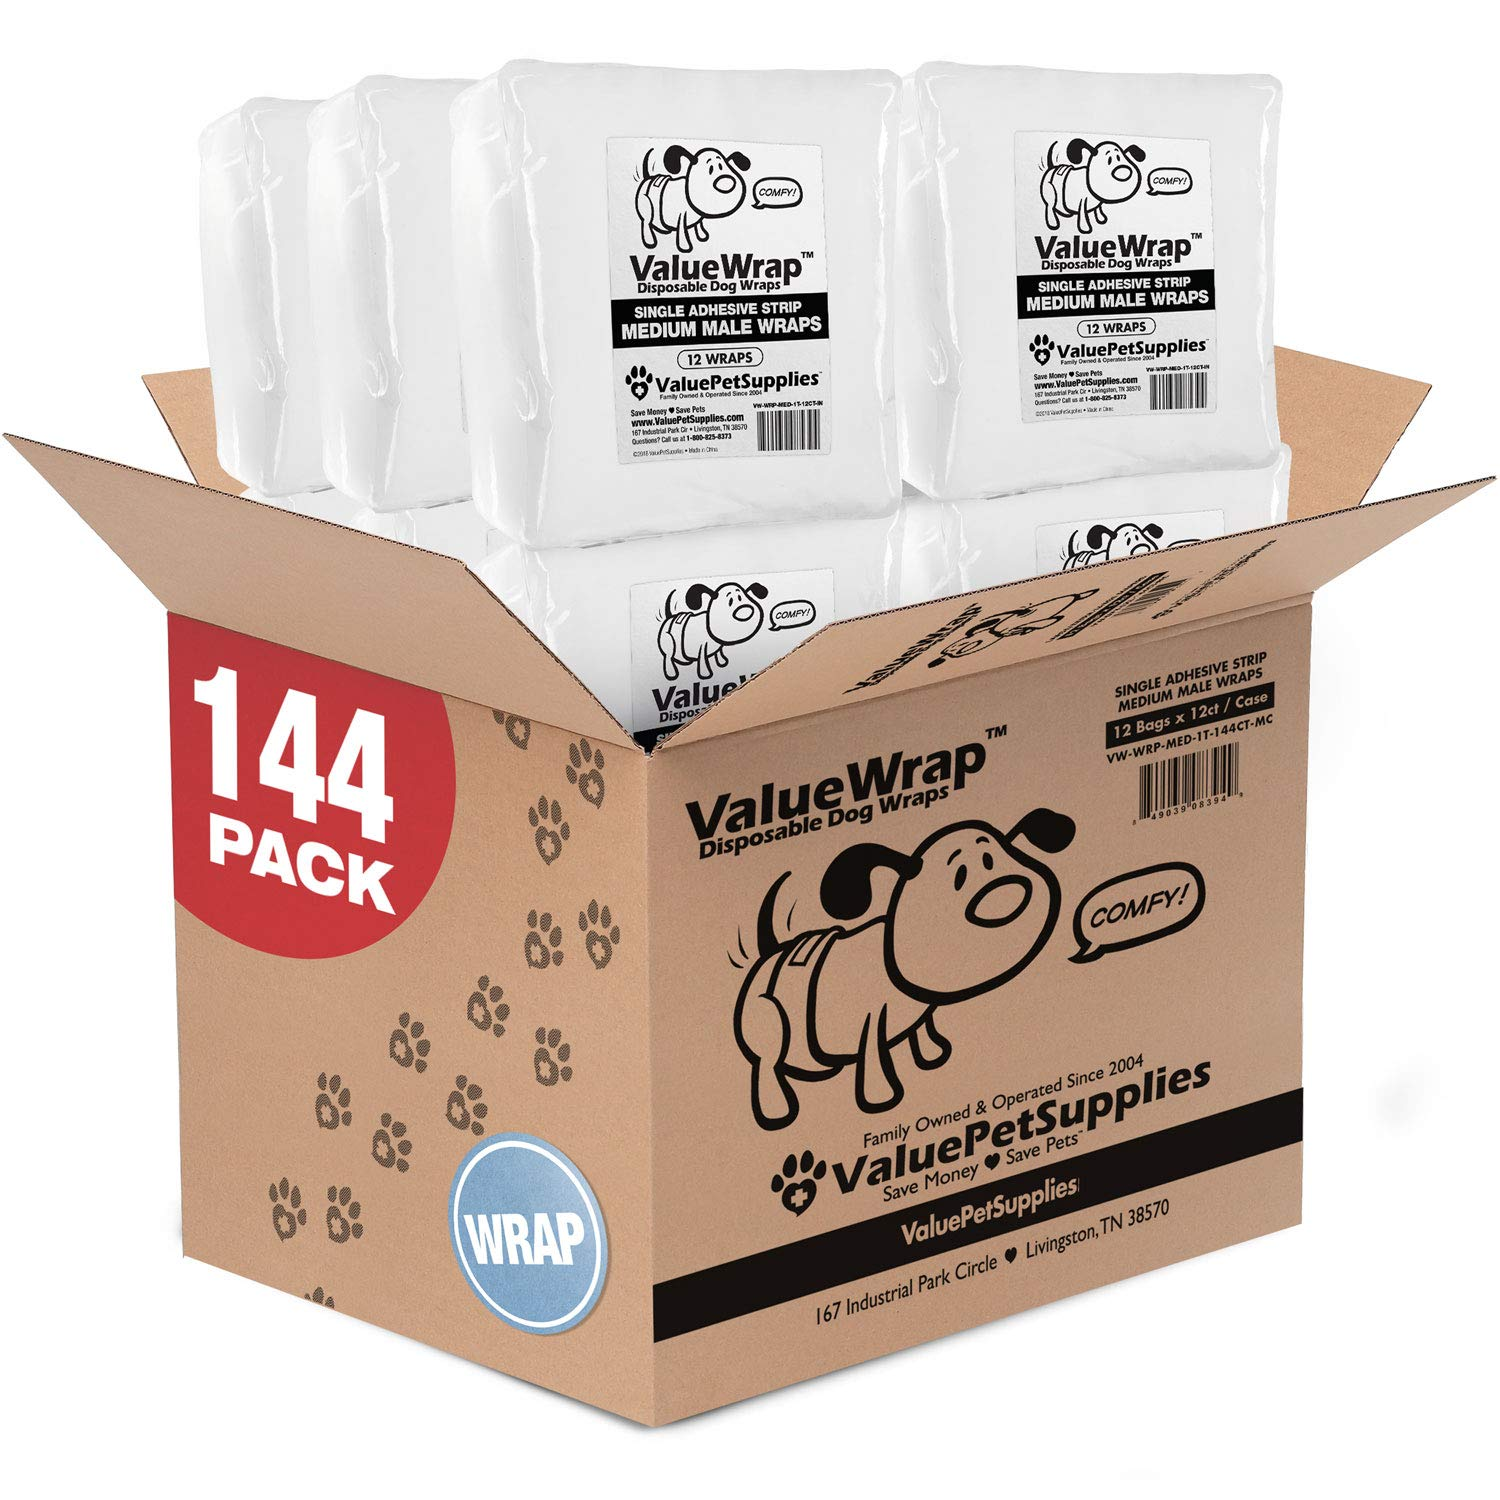 ValueWrap Disposable Male Dog Diapers, 1-Tab Medium, 144 Count - Absorbent Male Wraps for Incontinence, Excitable Urination & Travel | Fur-Friendly Fastener | Leak Protection | Wetness Indicator by ValueWrap